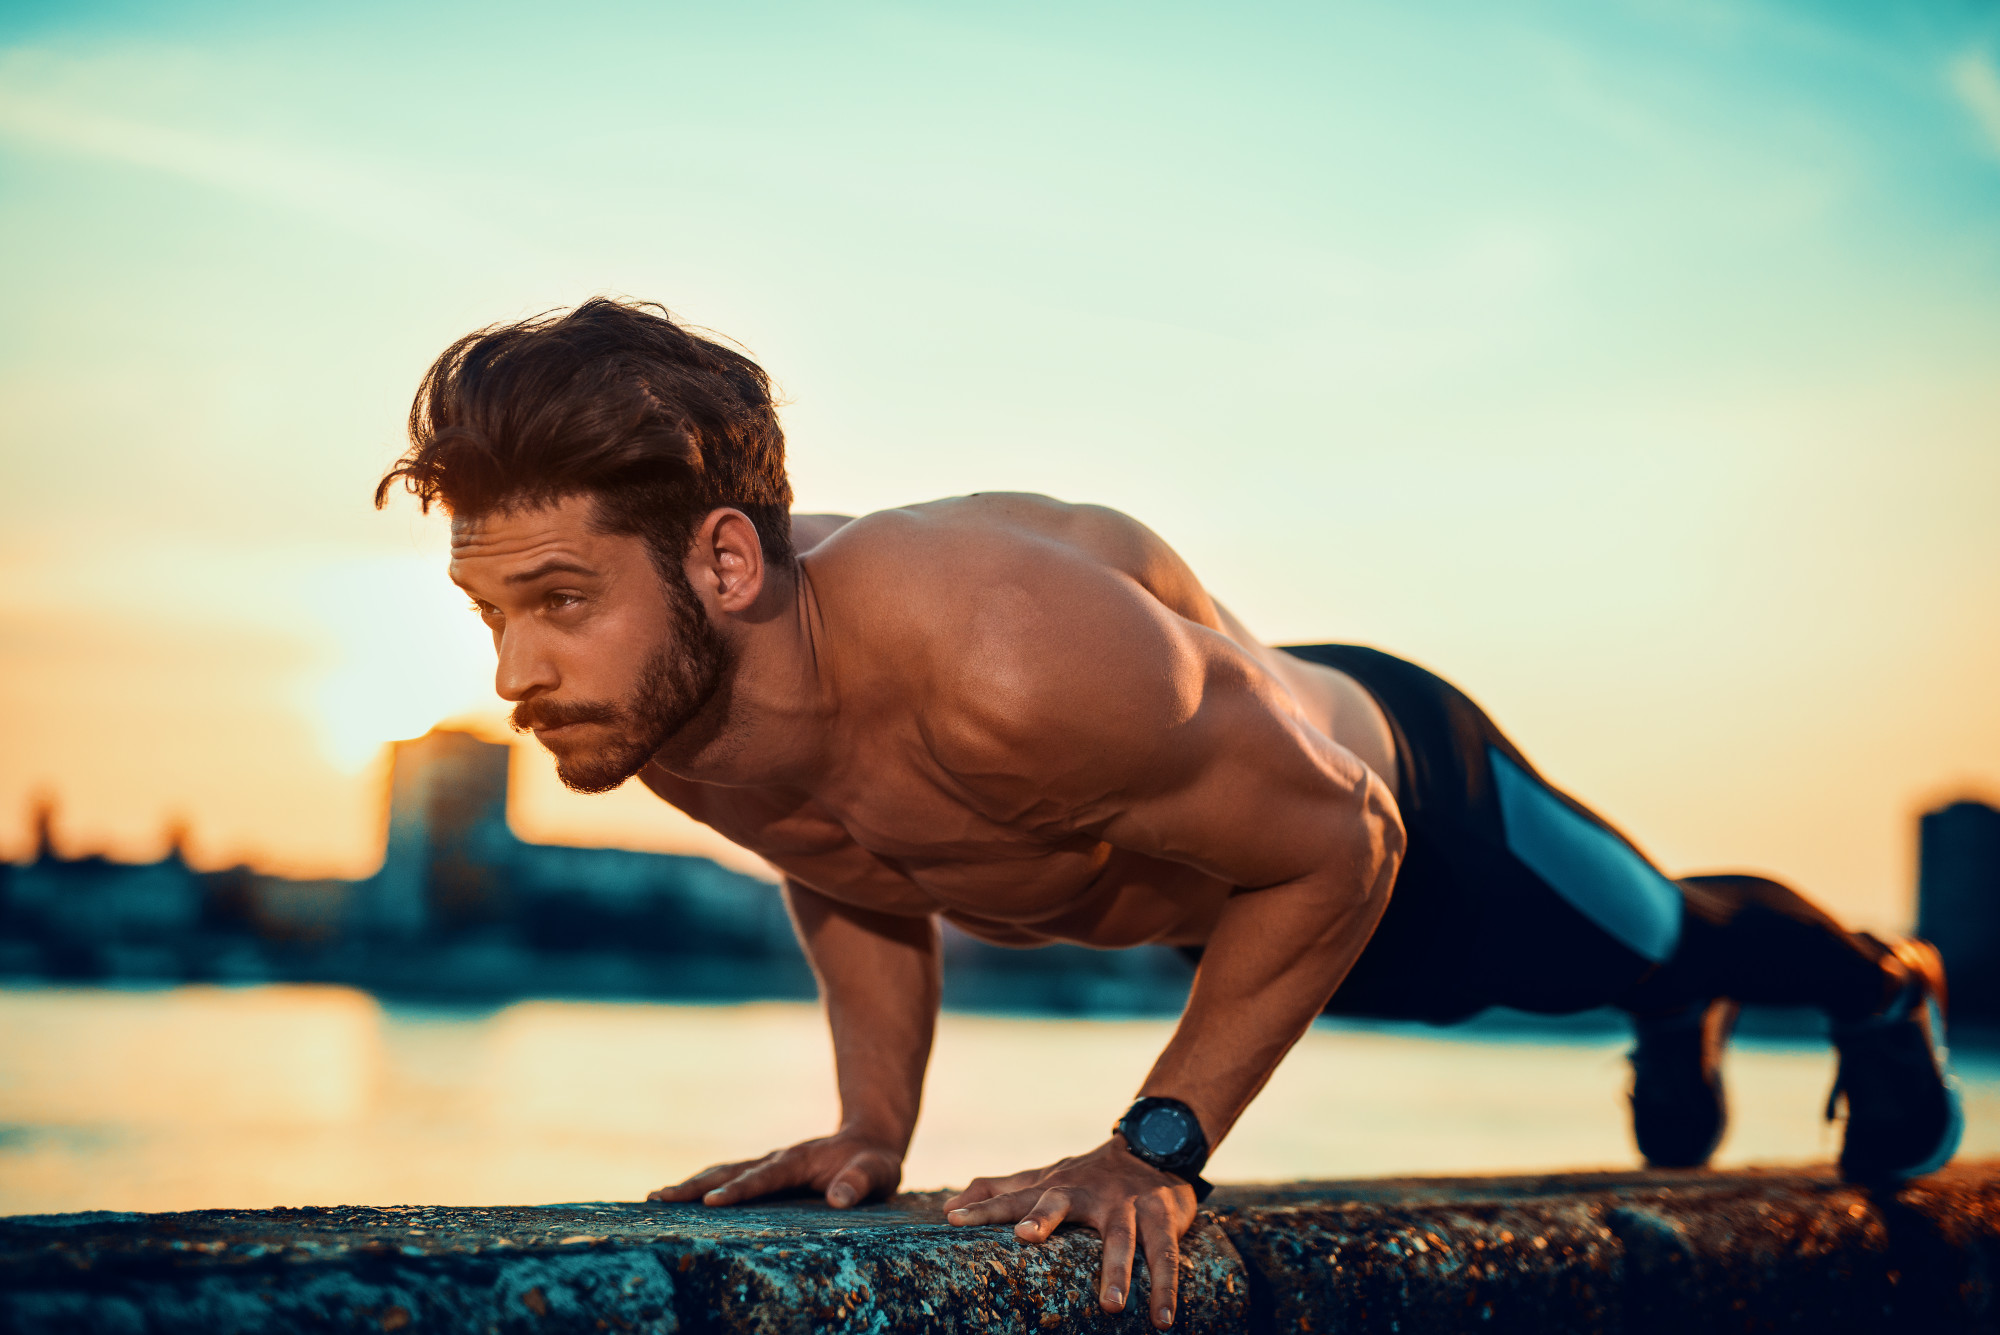 how many days a week should you work out